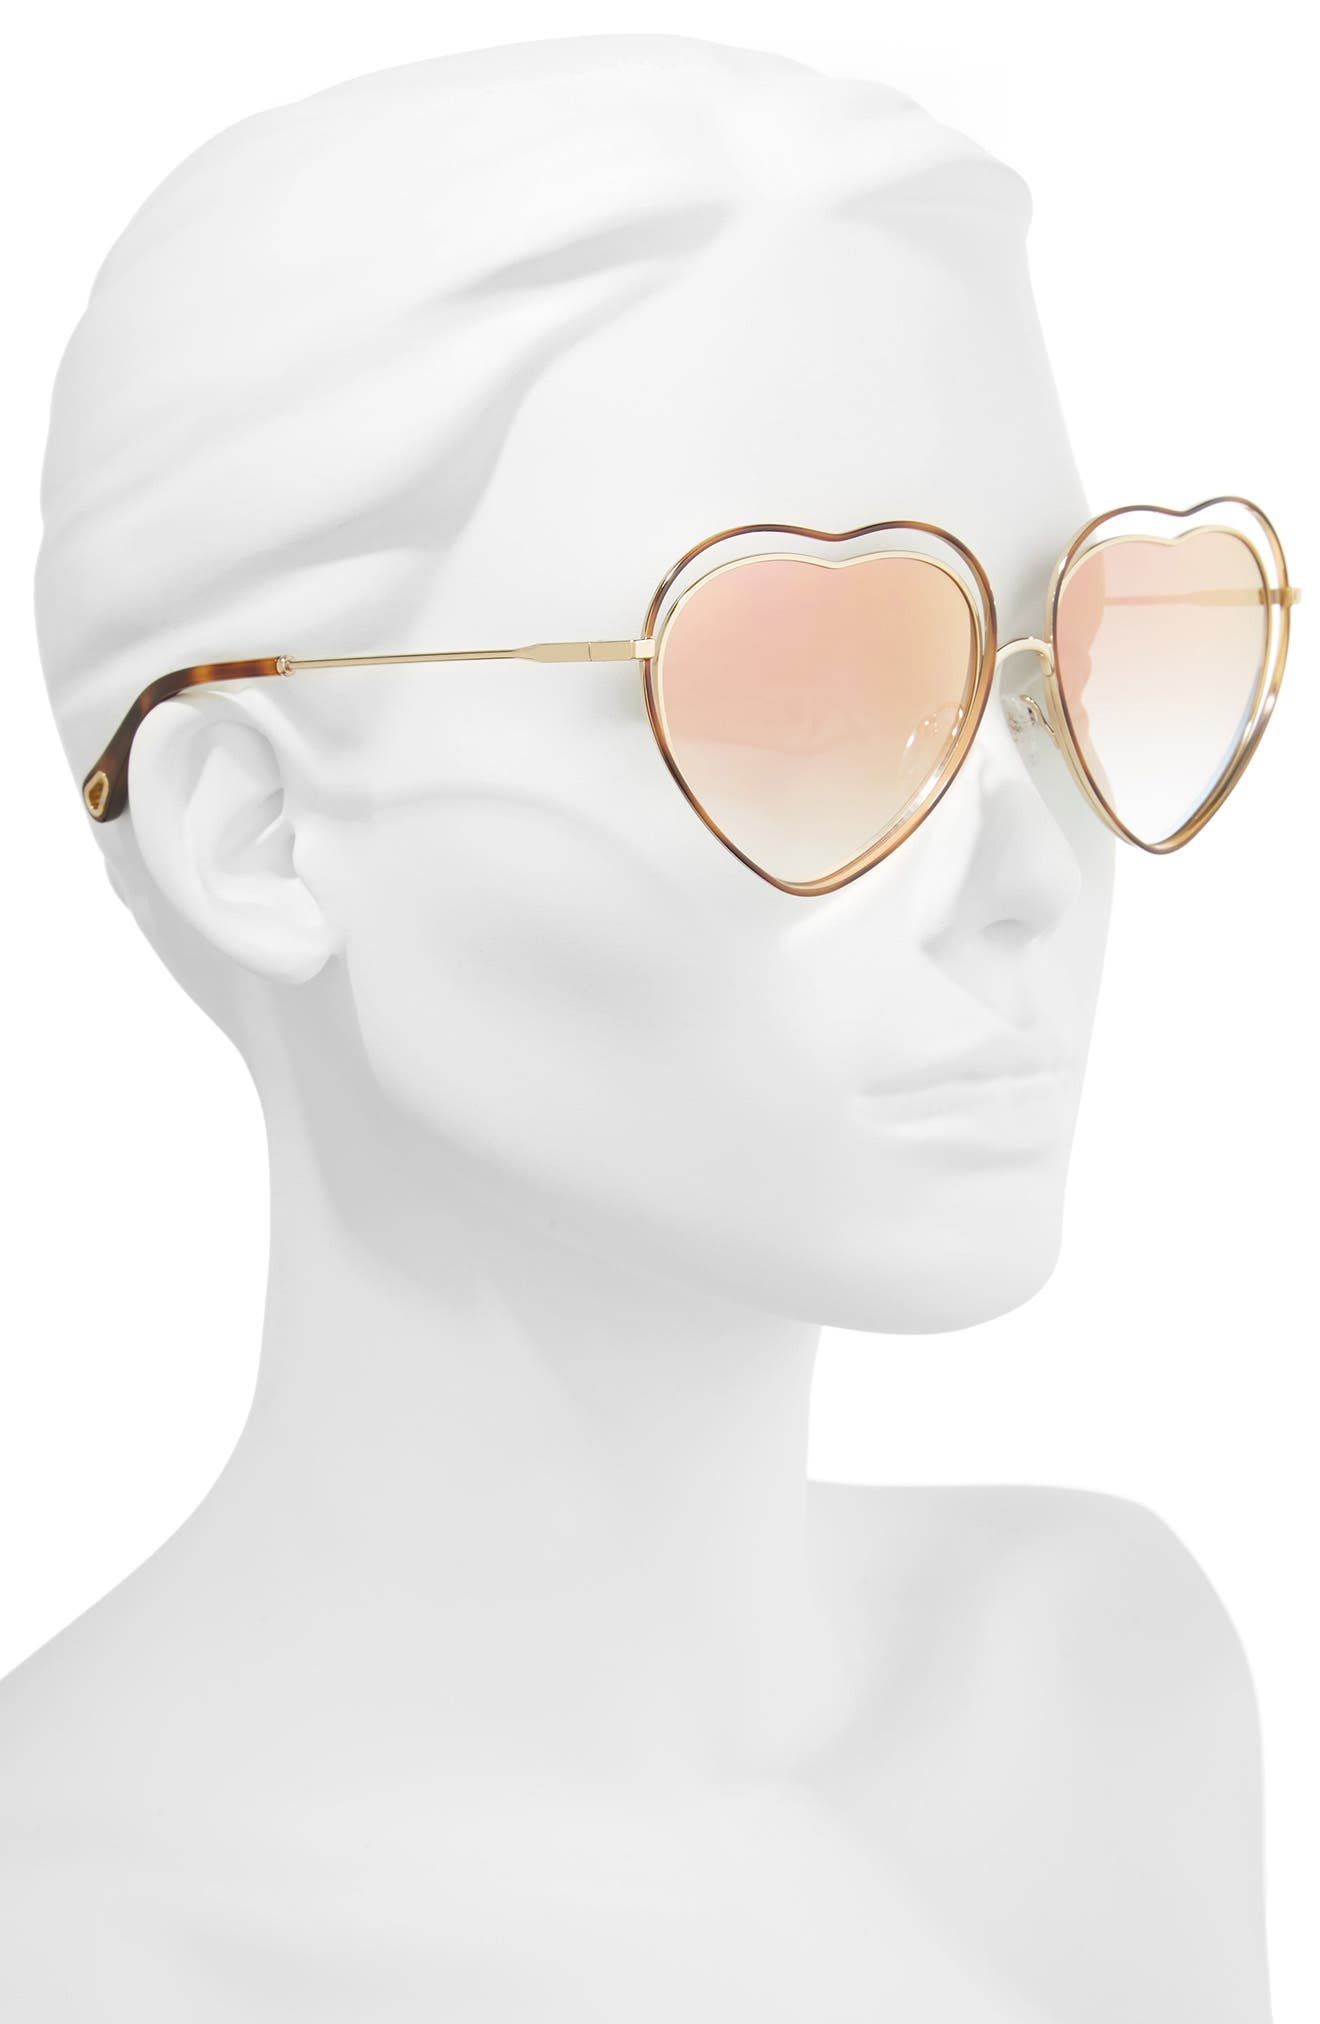 Poppy Love Heart Sunglasses,                             Alternate thumbnail 2, color,                             Havana/ Brown Peach